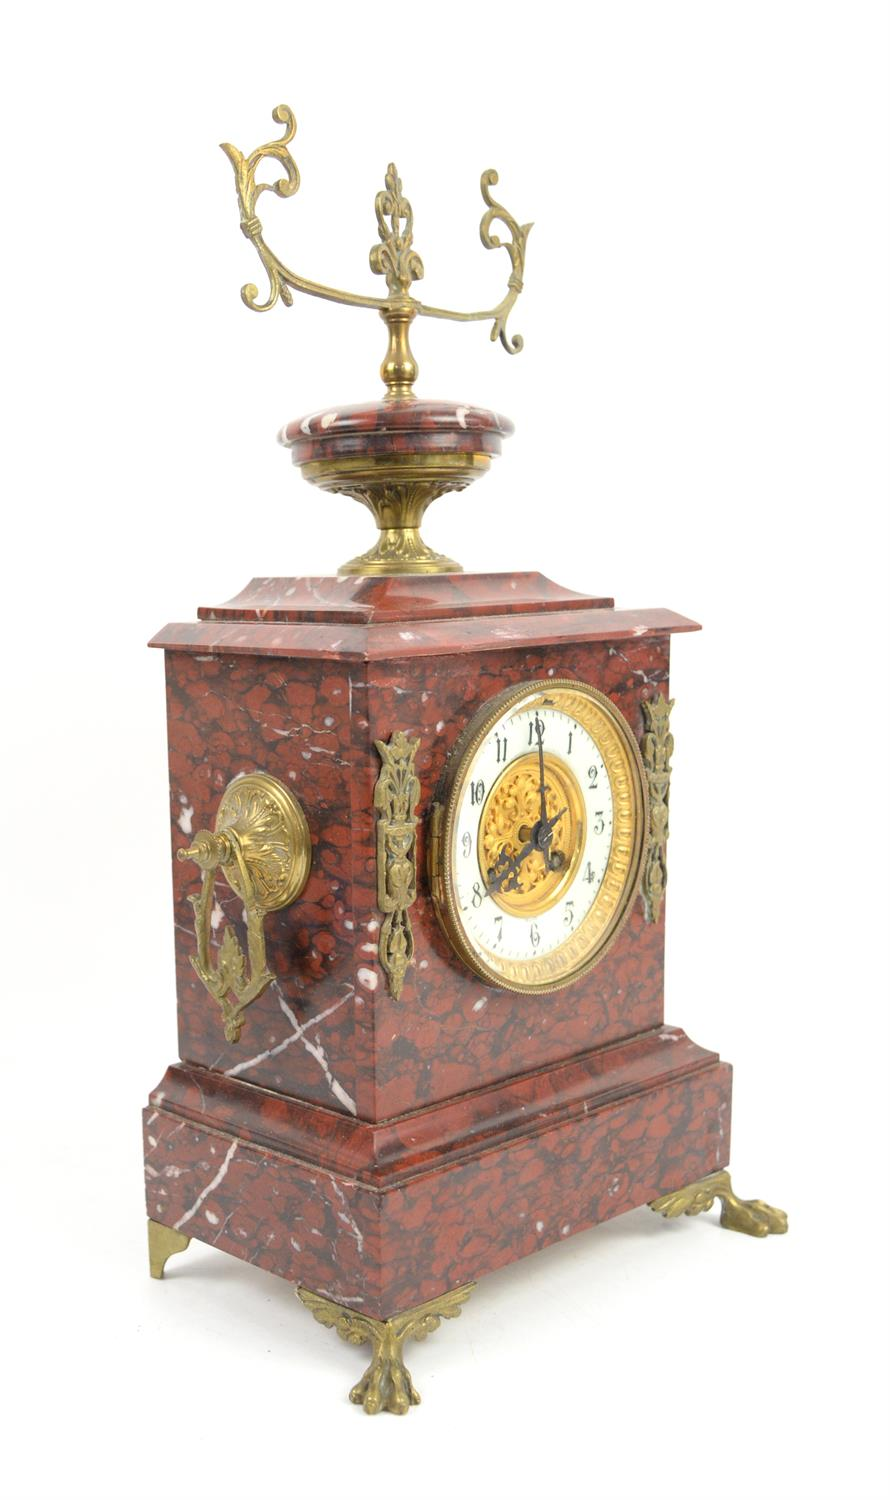 French rouge marble 8 day clock garniture by Japy Freres striking a bell on hour and half hour, - Image 2 of 3